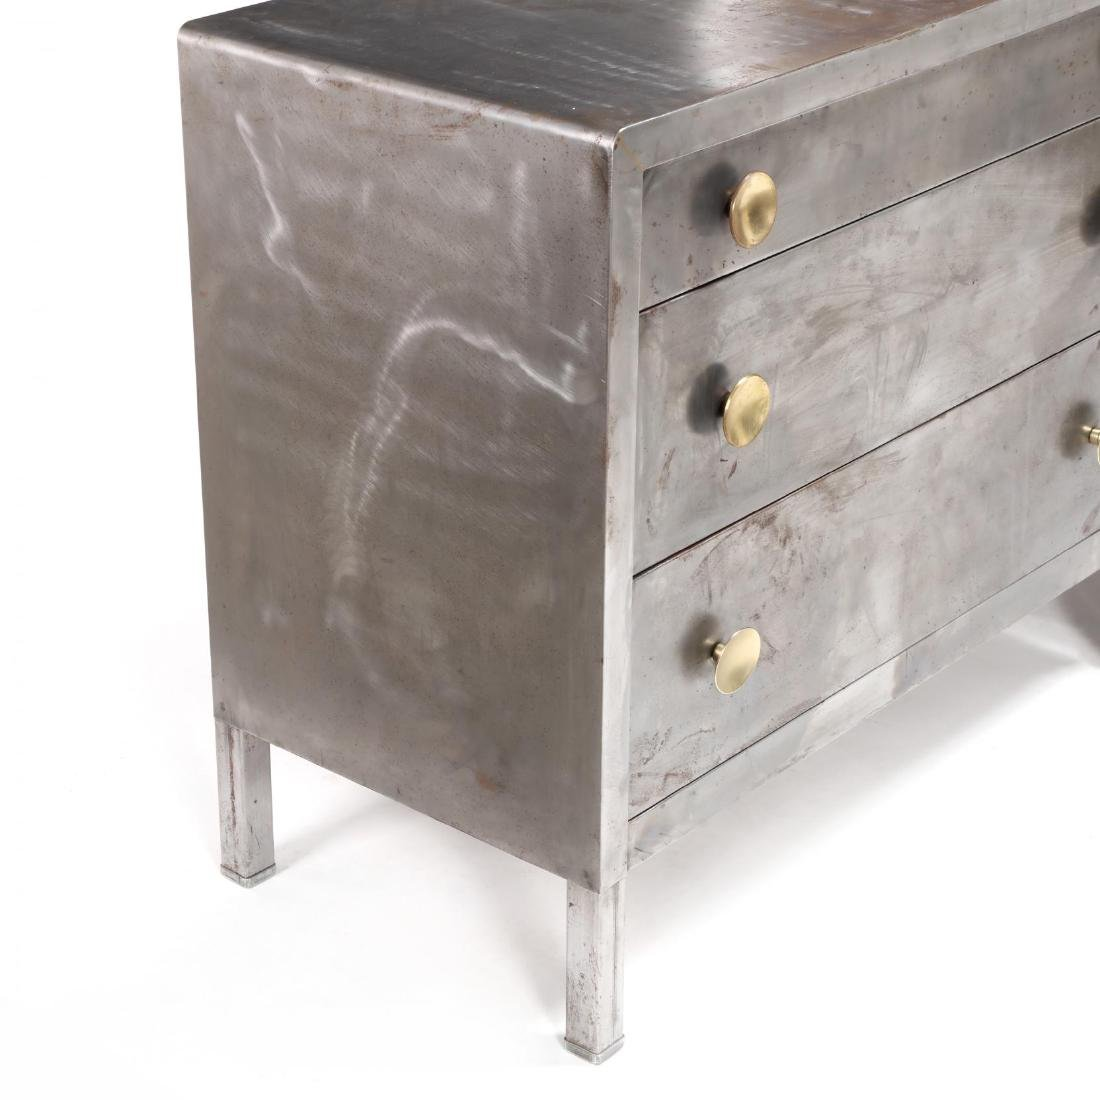 Norman Bel Geddes, Pair of Industrial Metal Chests - 4